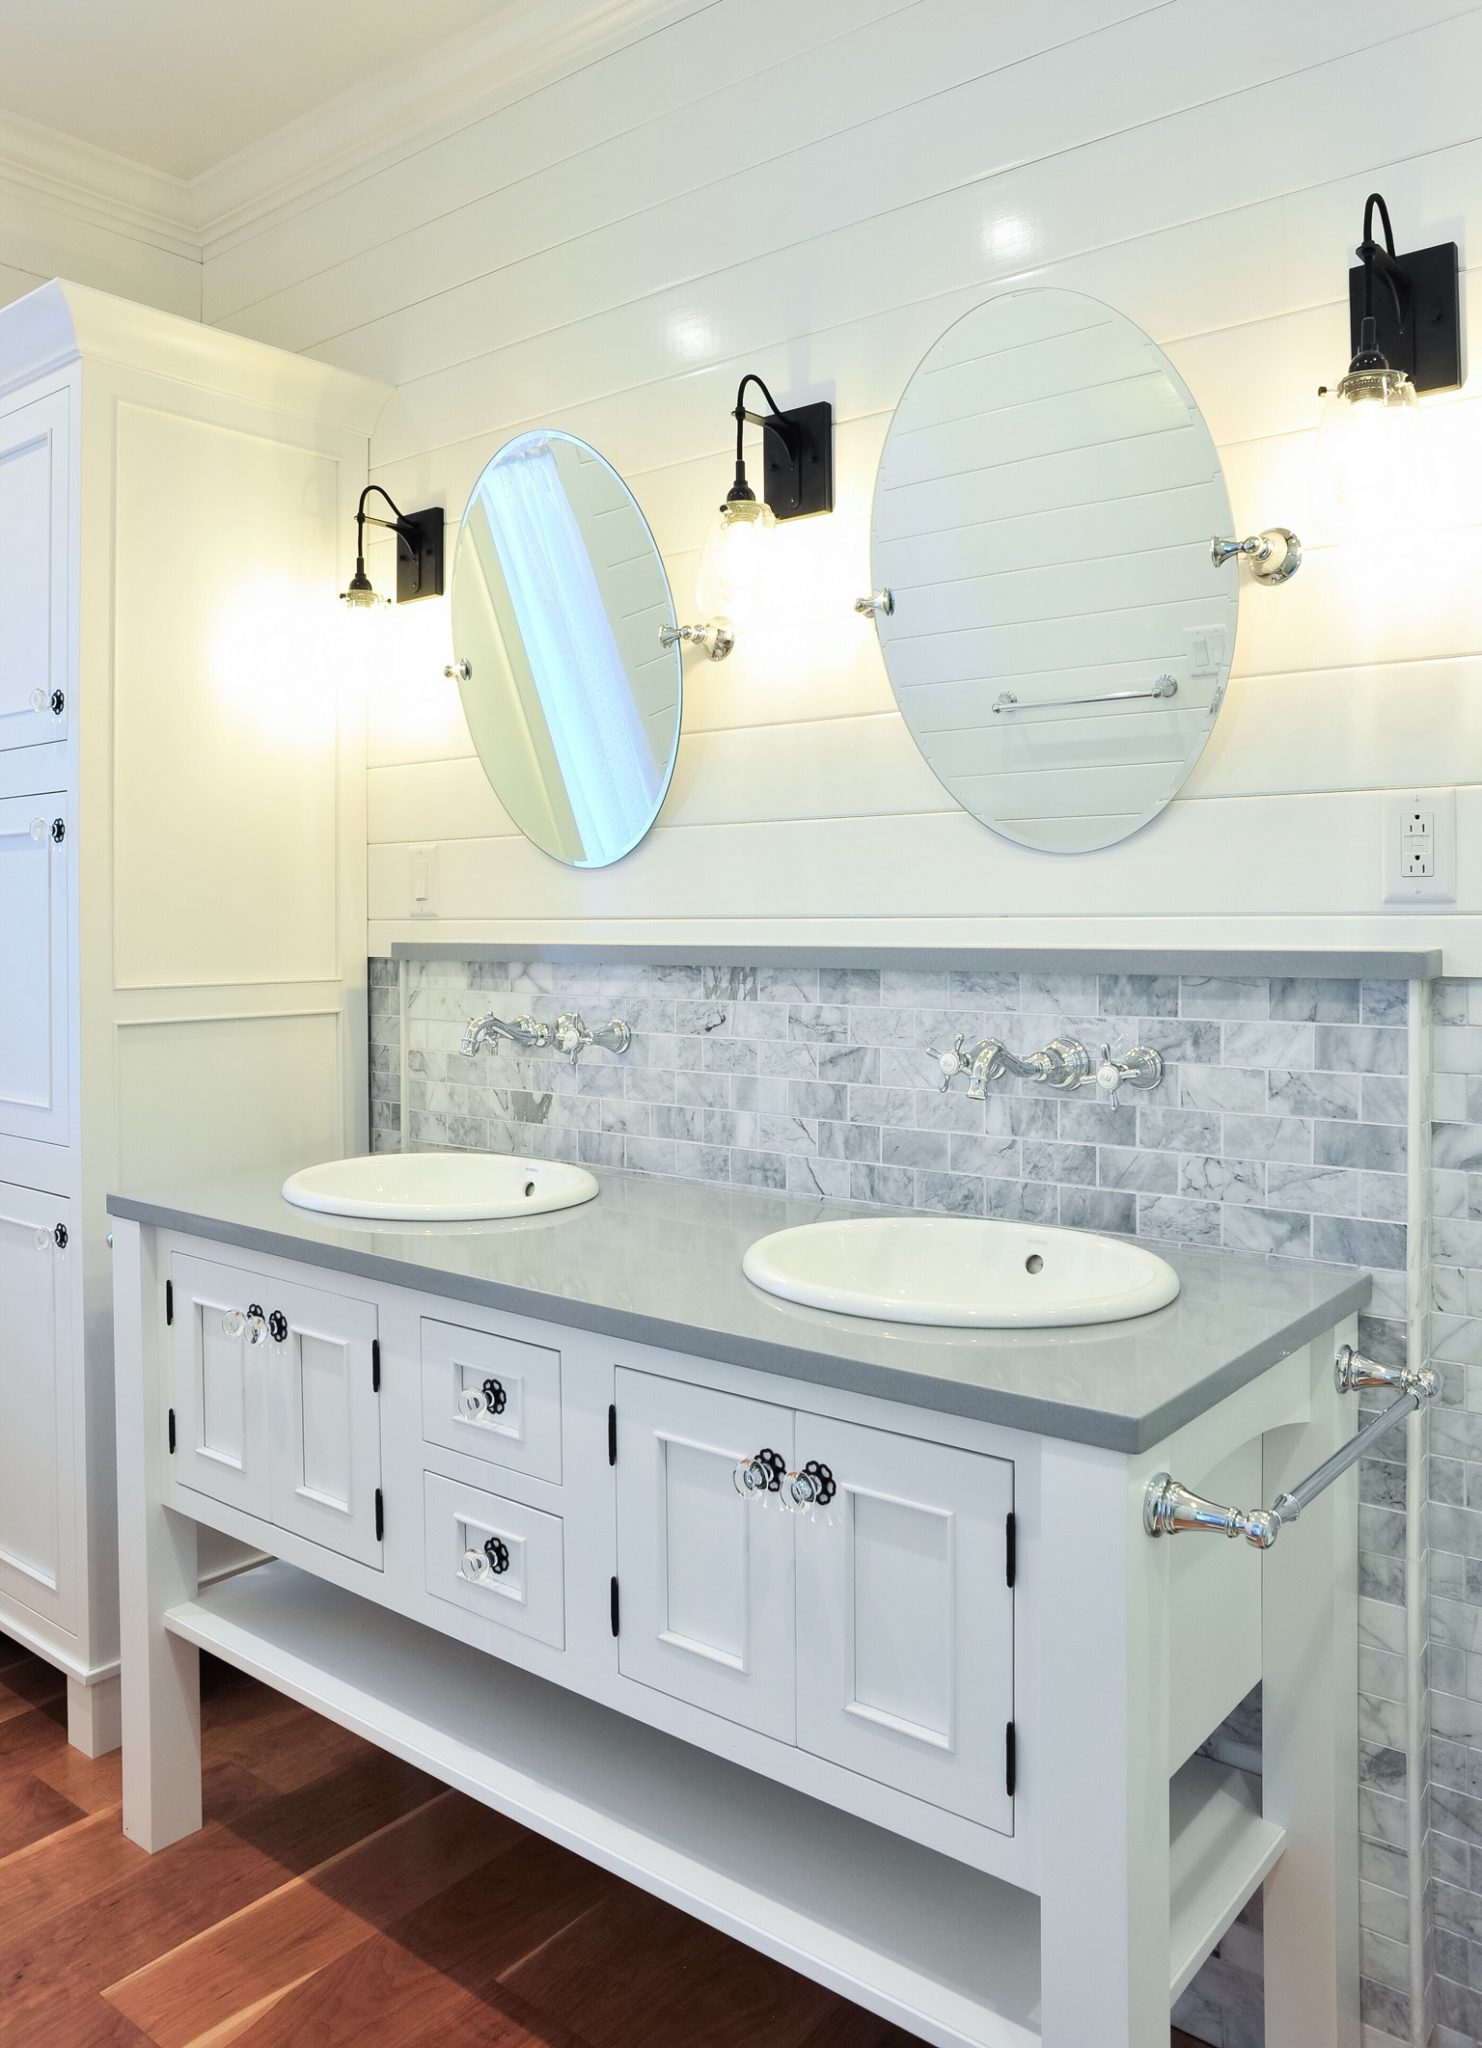 One of our Keuka, NY bathroom remodels with custom inset doors and drawers.